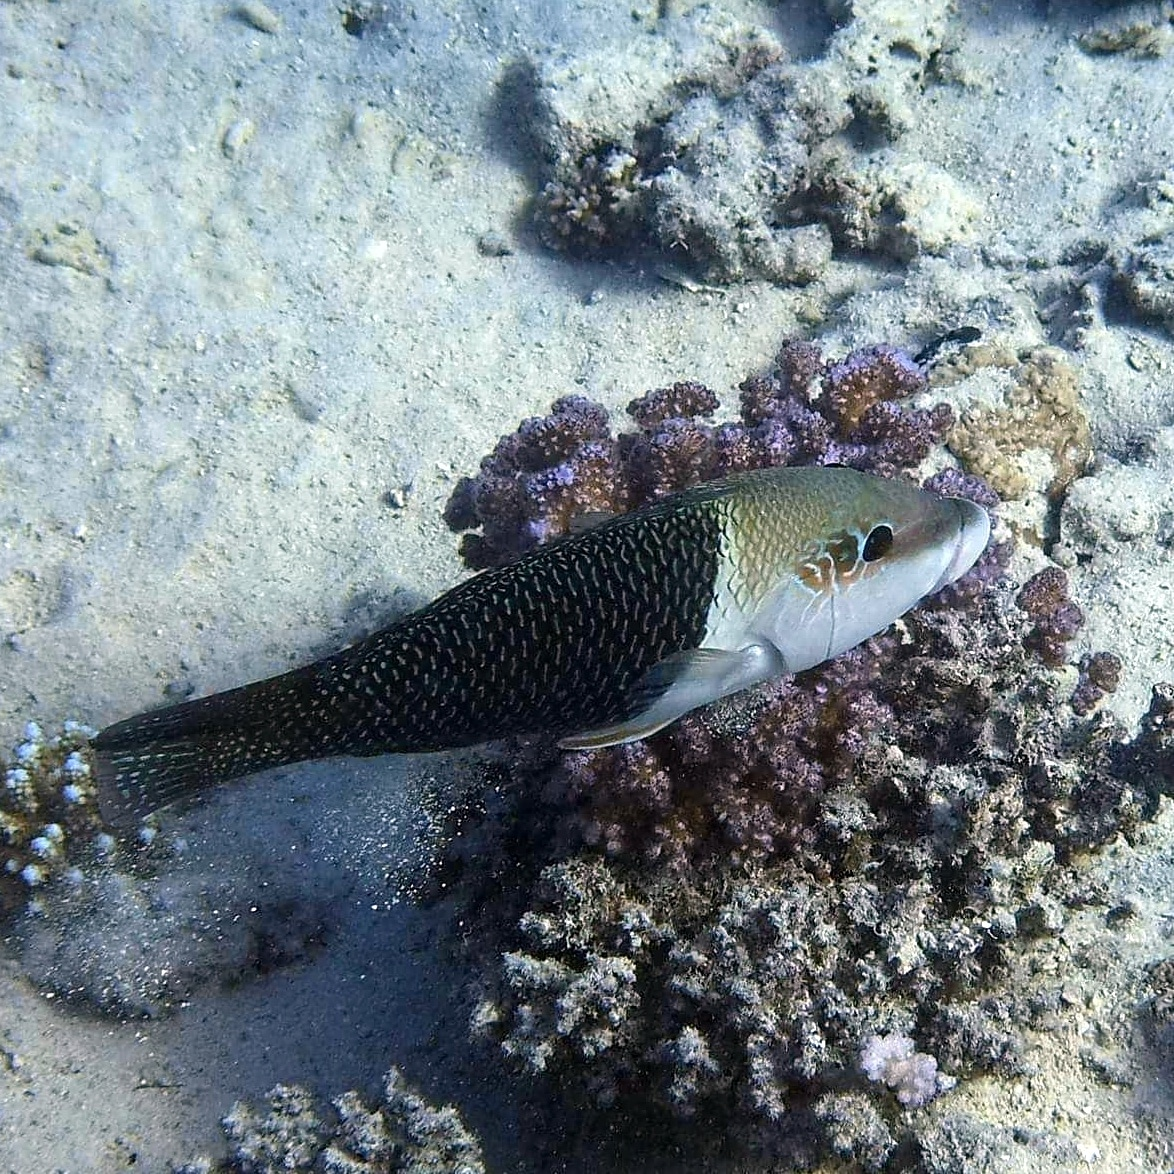 The Blackeye Thicklip wrasse. A little beauty